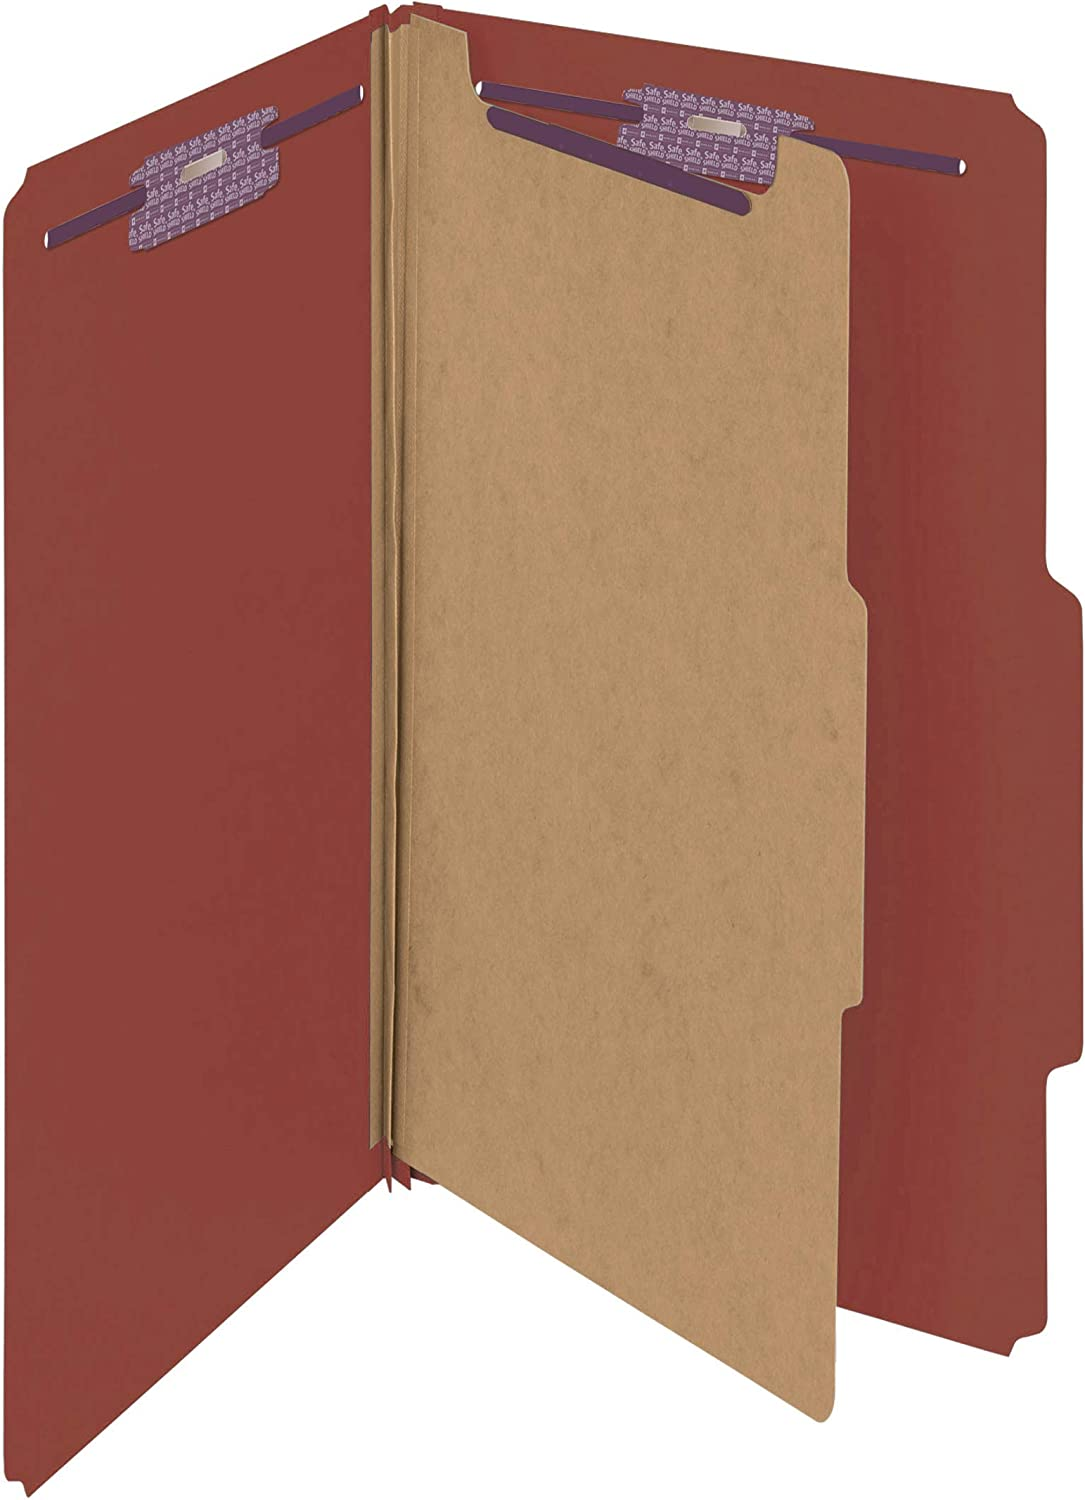 """Smead Pressboard Classification File Folder with SafeSHIELD Fasteners, 1 Divider, 2"""" Expansion, Legal Size, Red, 10 per Box (18775) : Top Tab Classification Folders : Office Products"""